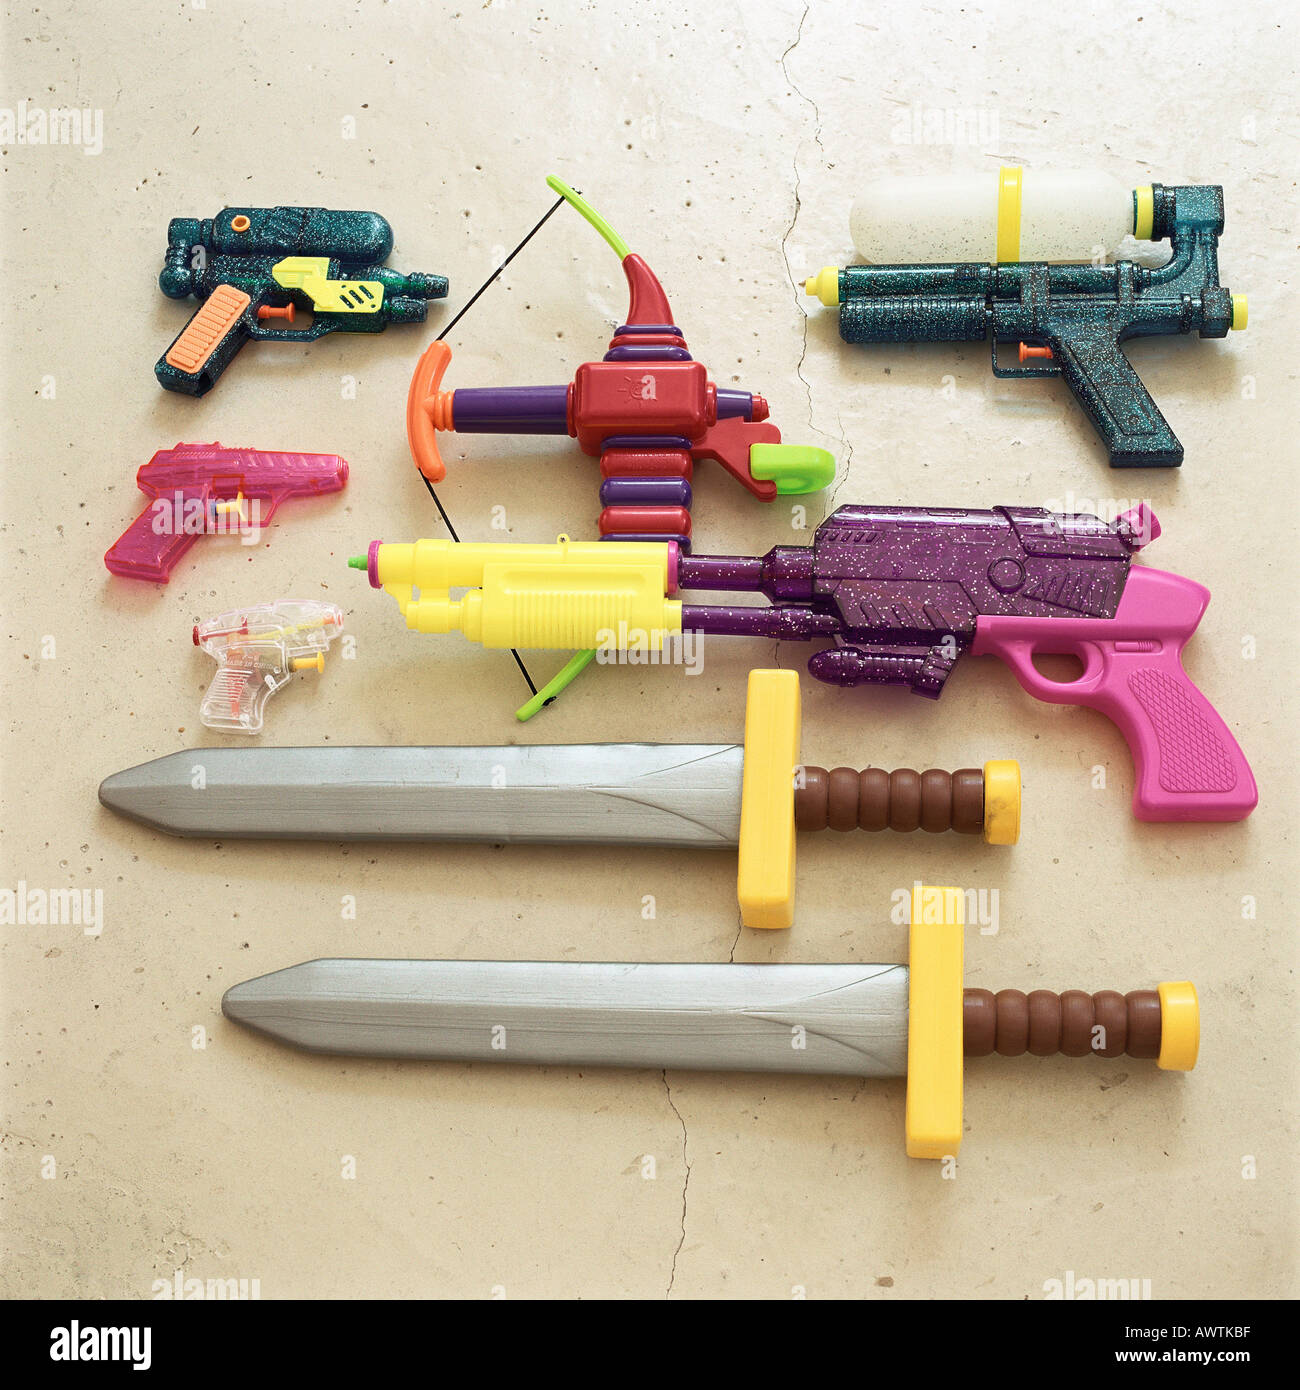 Toy Swords And Guns : Children s toy swords and guns stock photo alamy